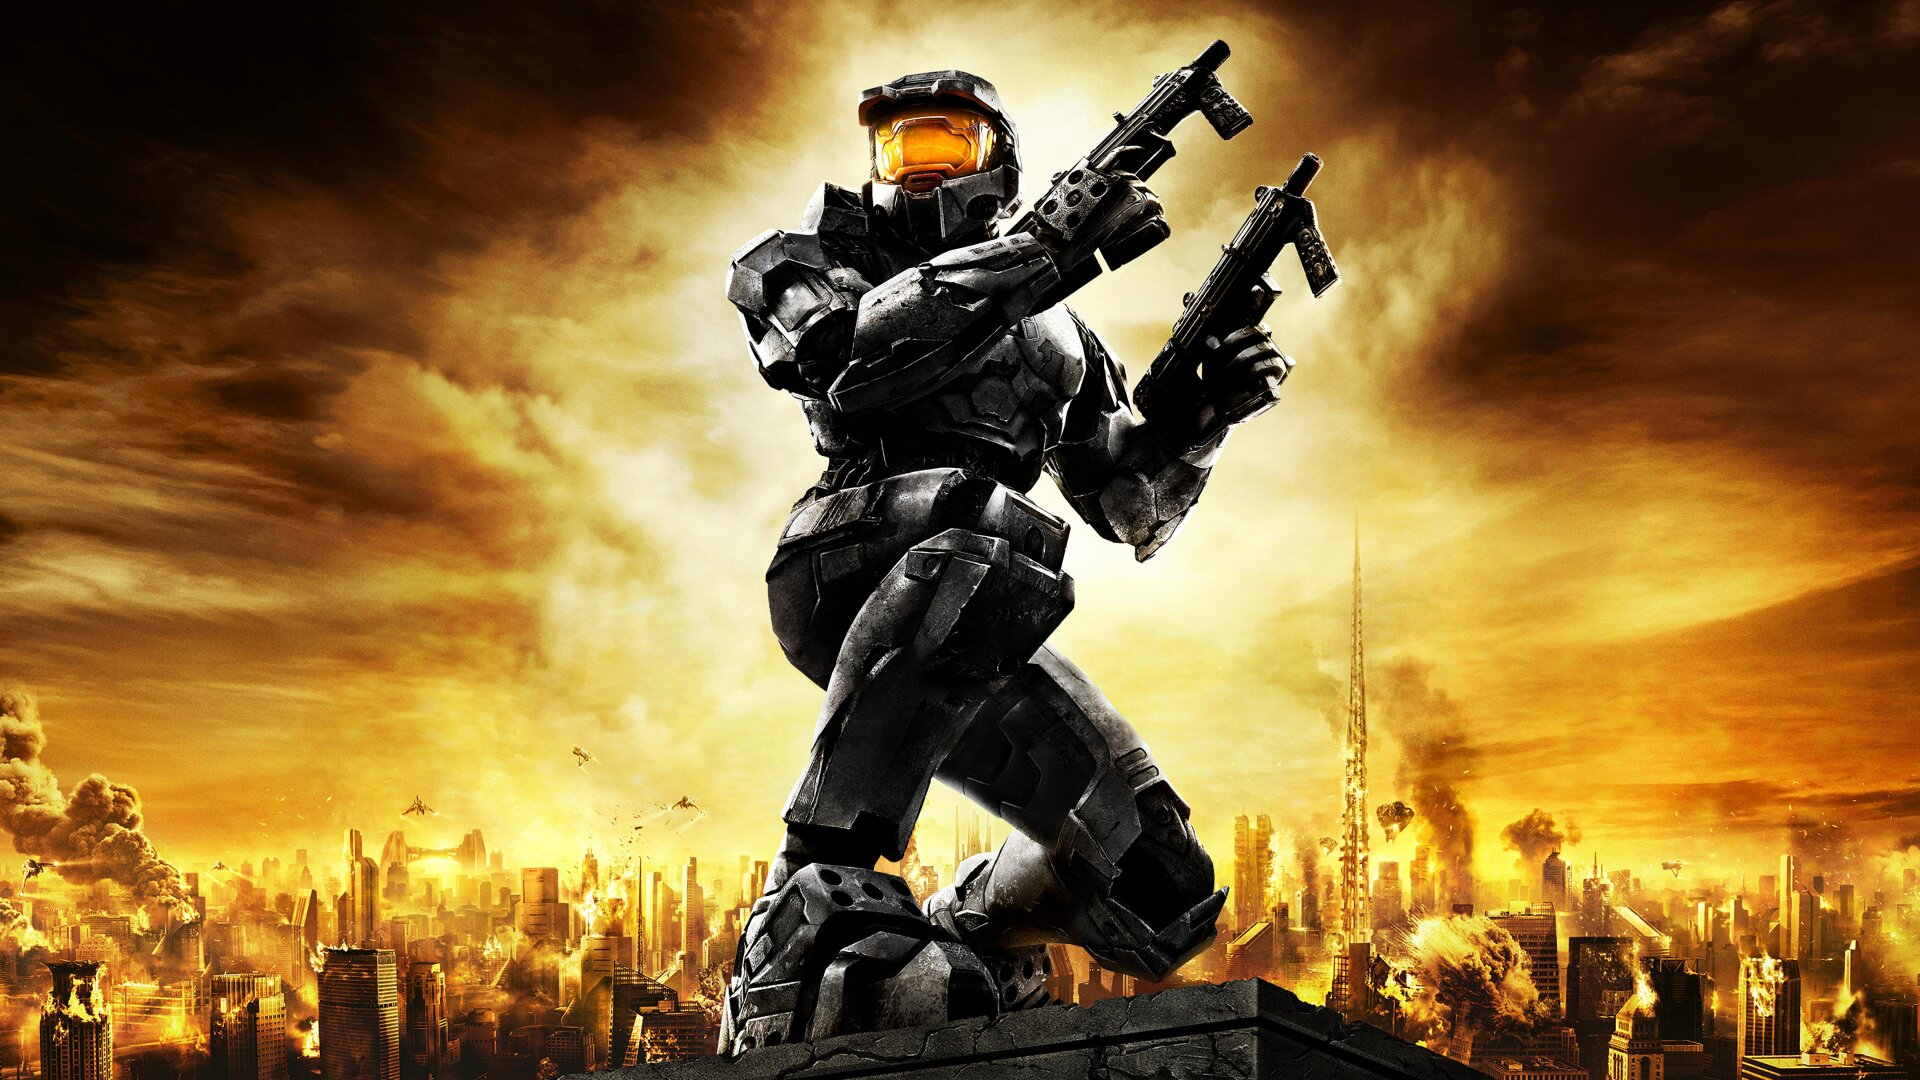 Halo 2: Anniversary arrives on PC as part of the Master Chief Collection on May 12